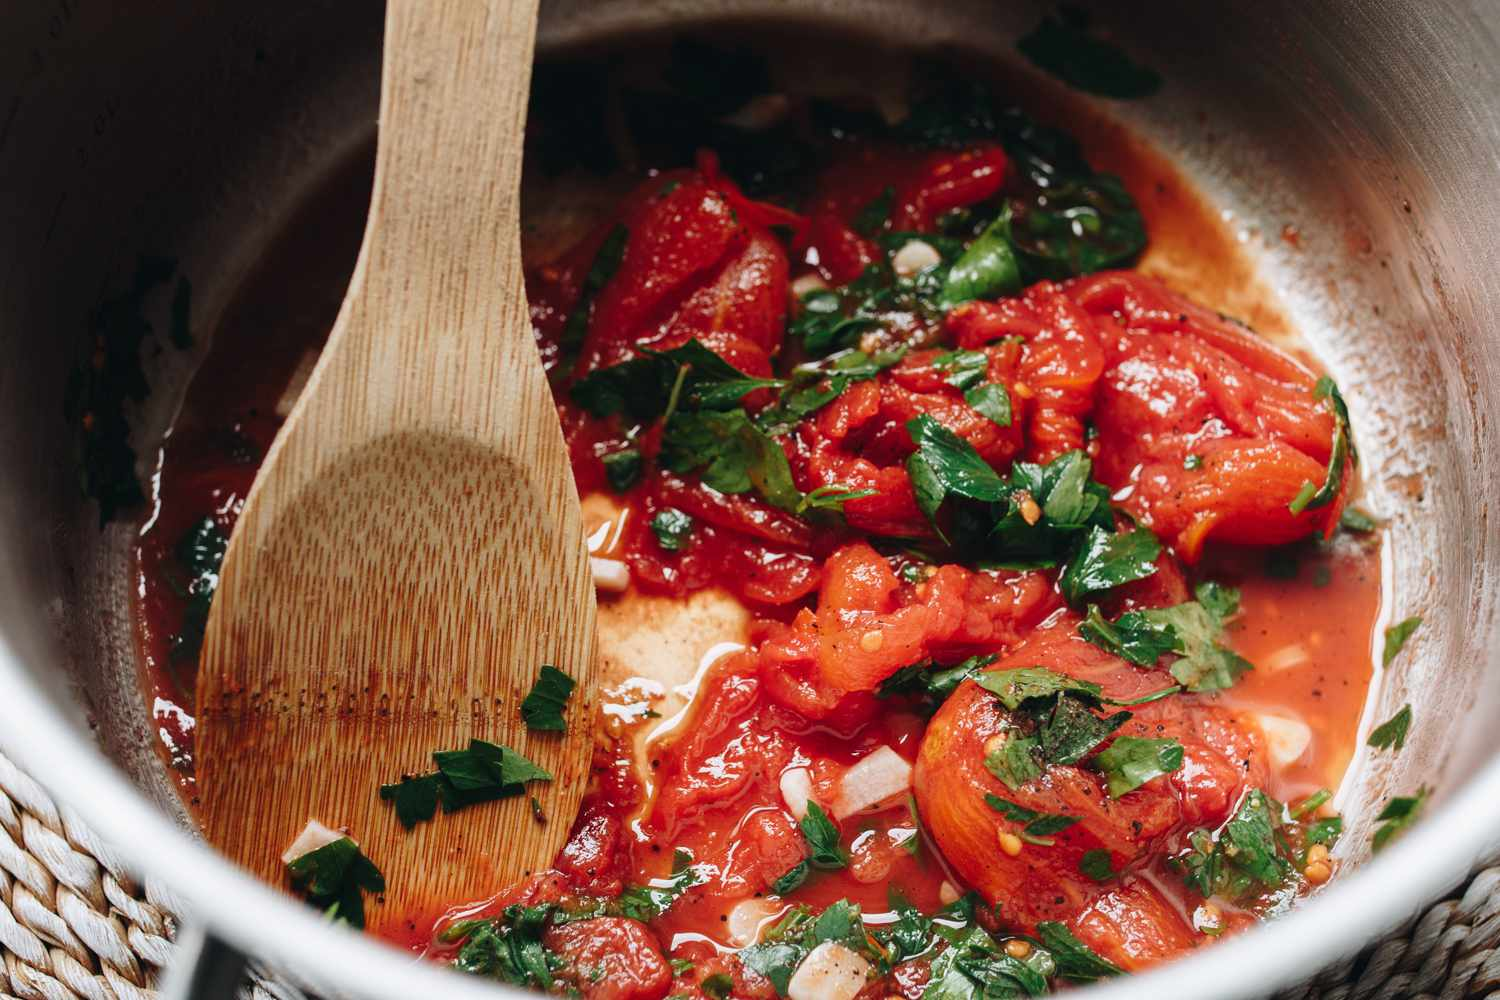 Cooking tomatoes for ratatouille